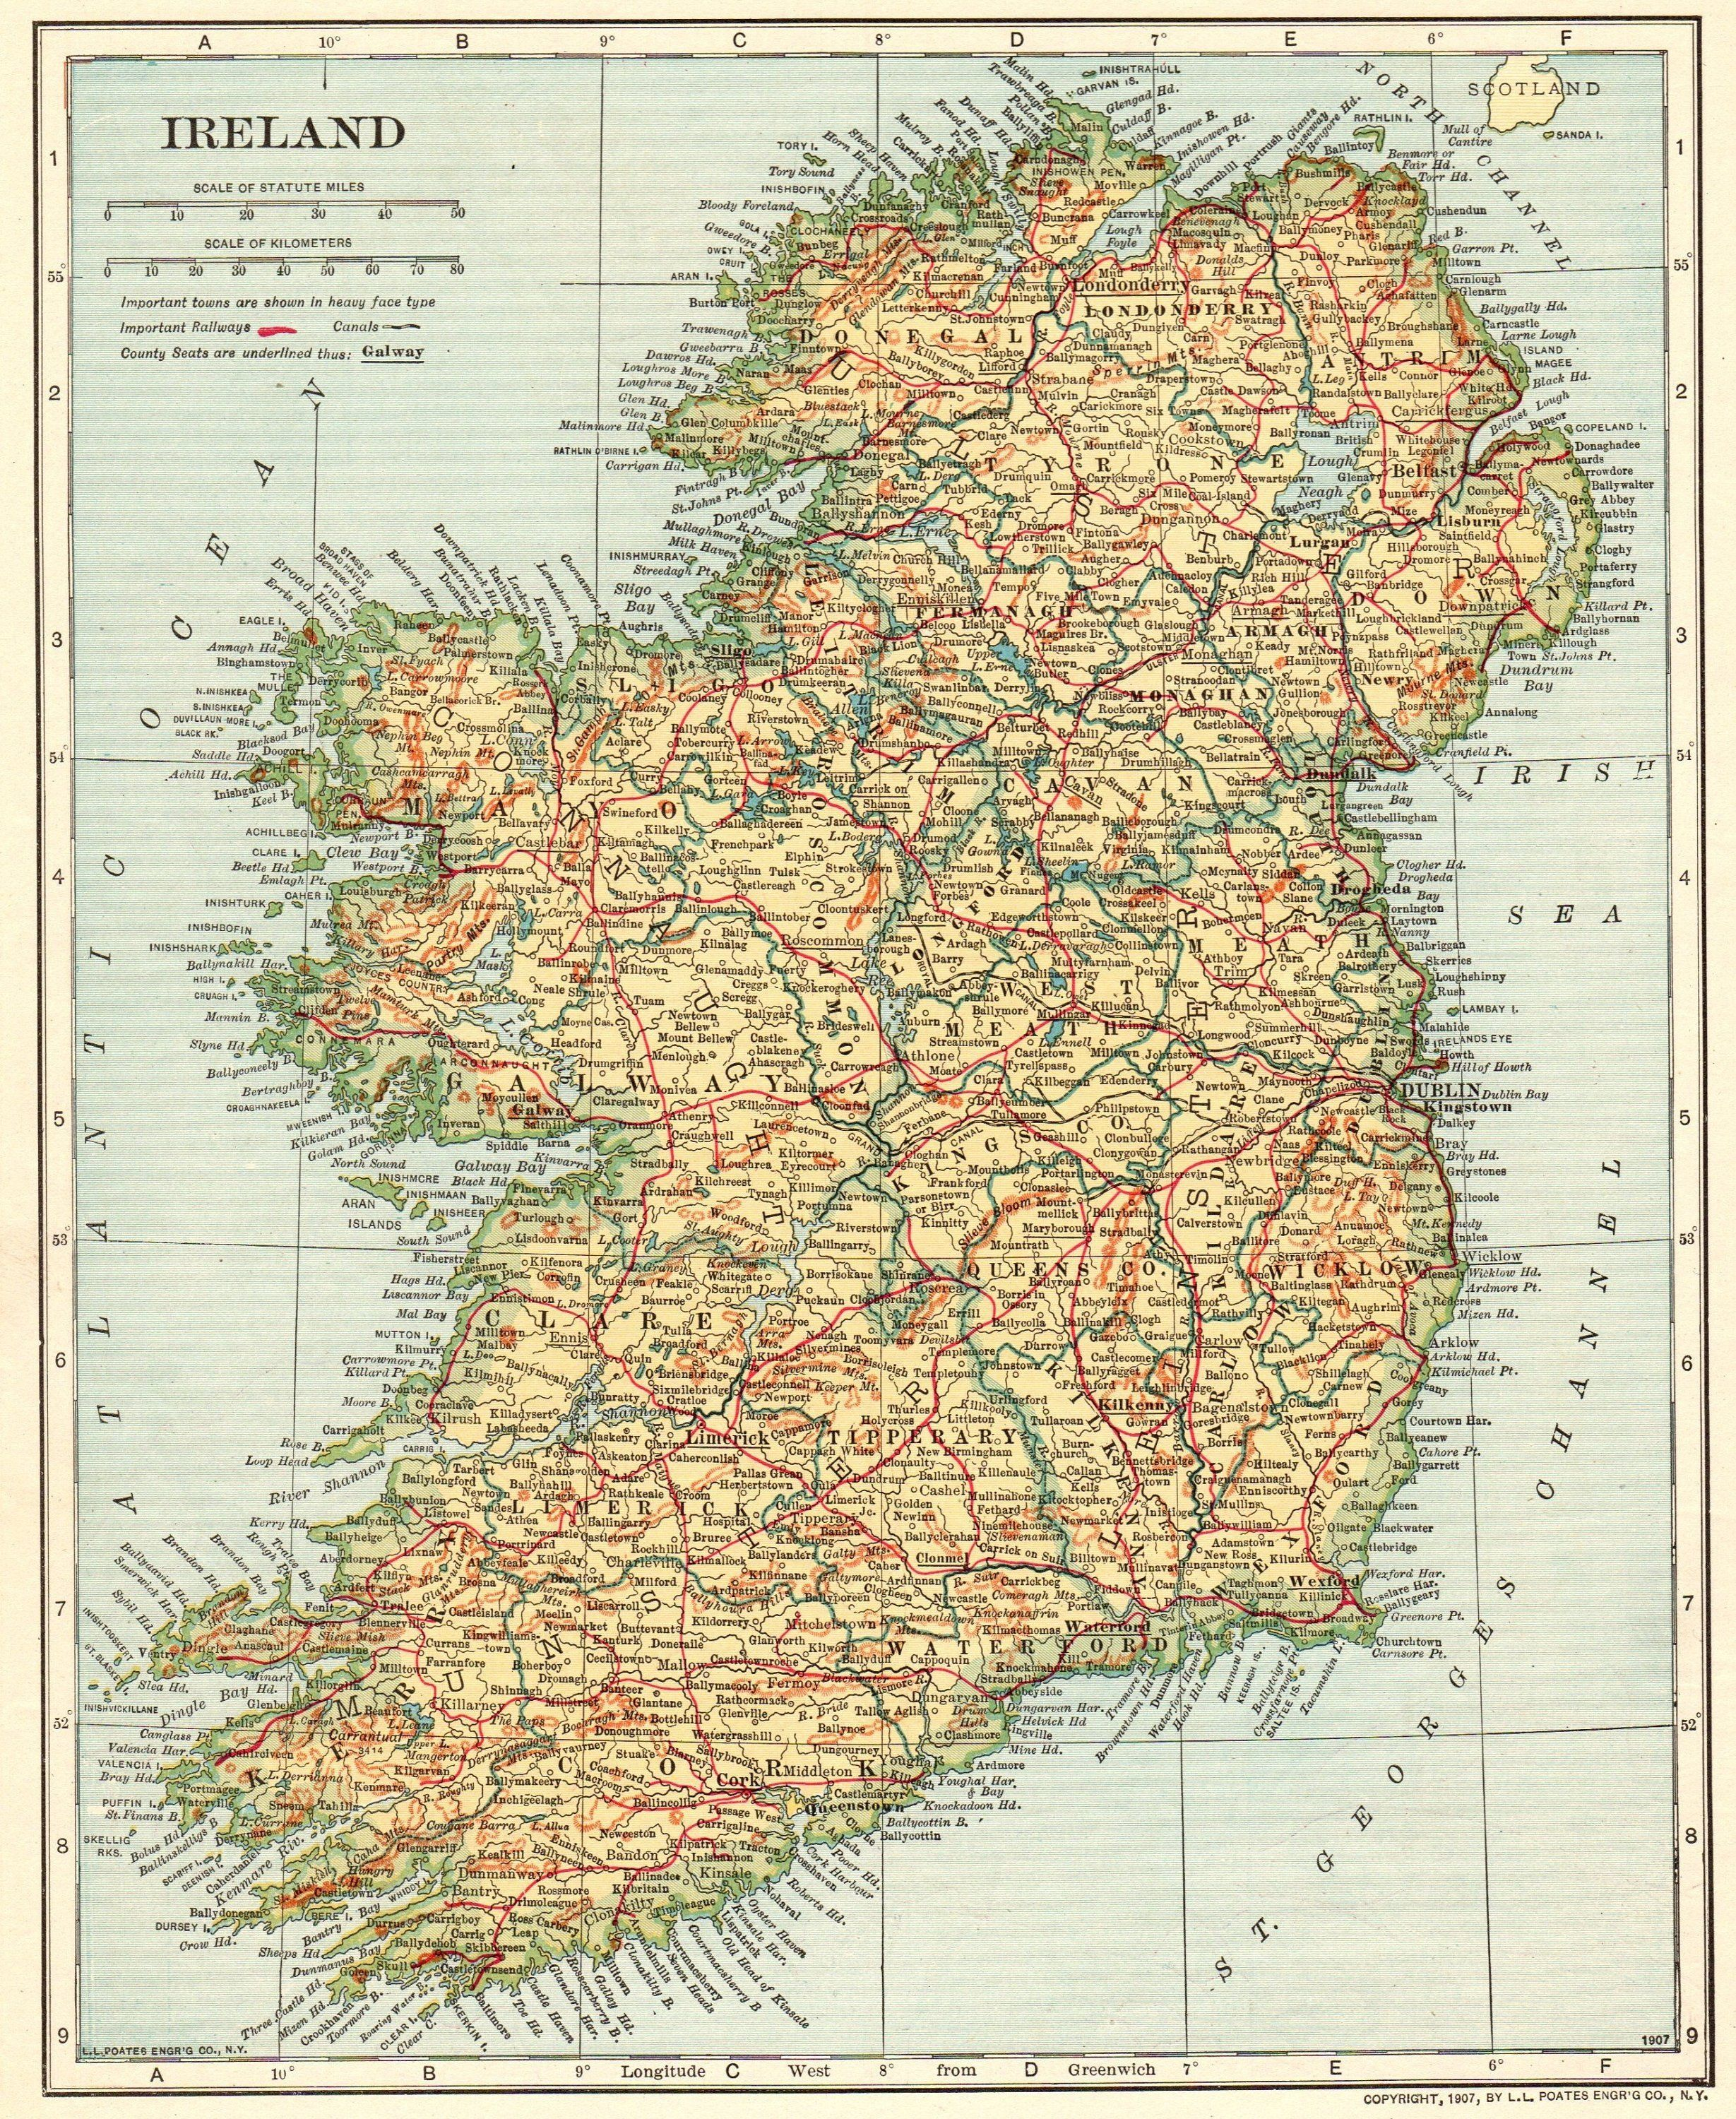 World Map Of Ireland.1925 Antique Ireland Map Vintage Map Of Ireland Gallery Wall Library